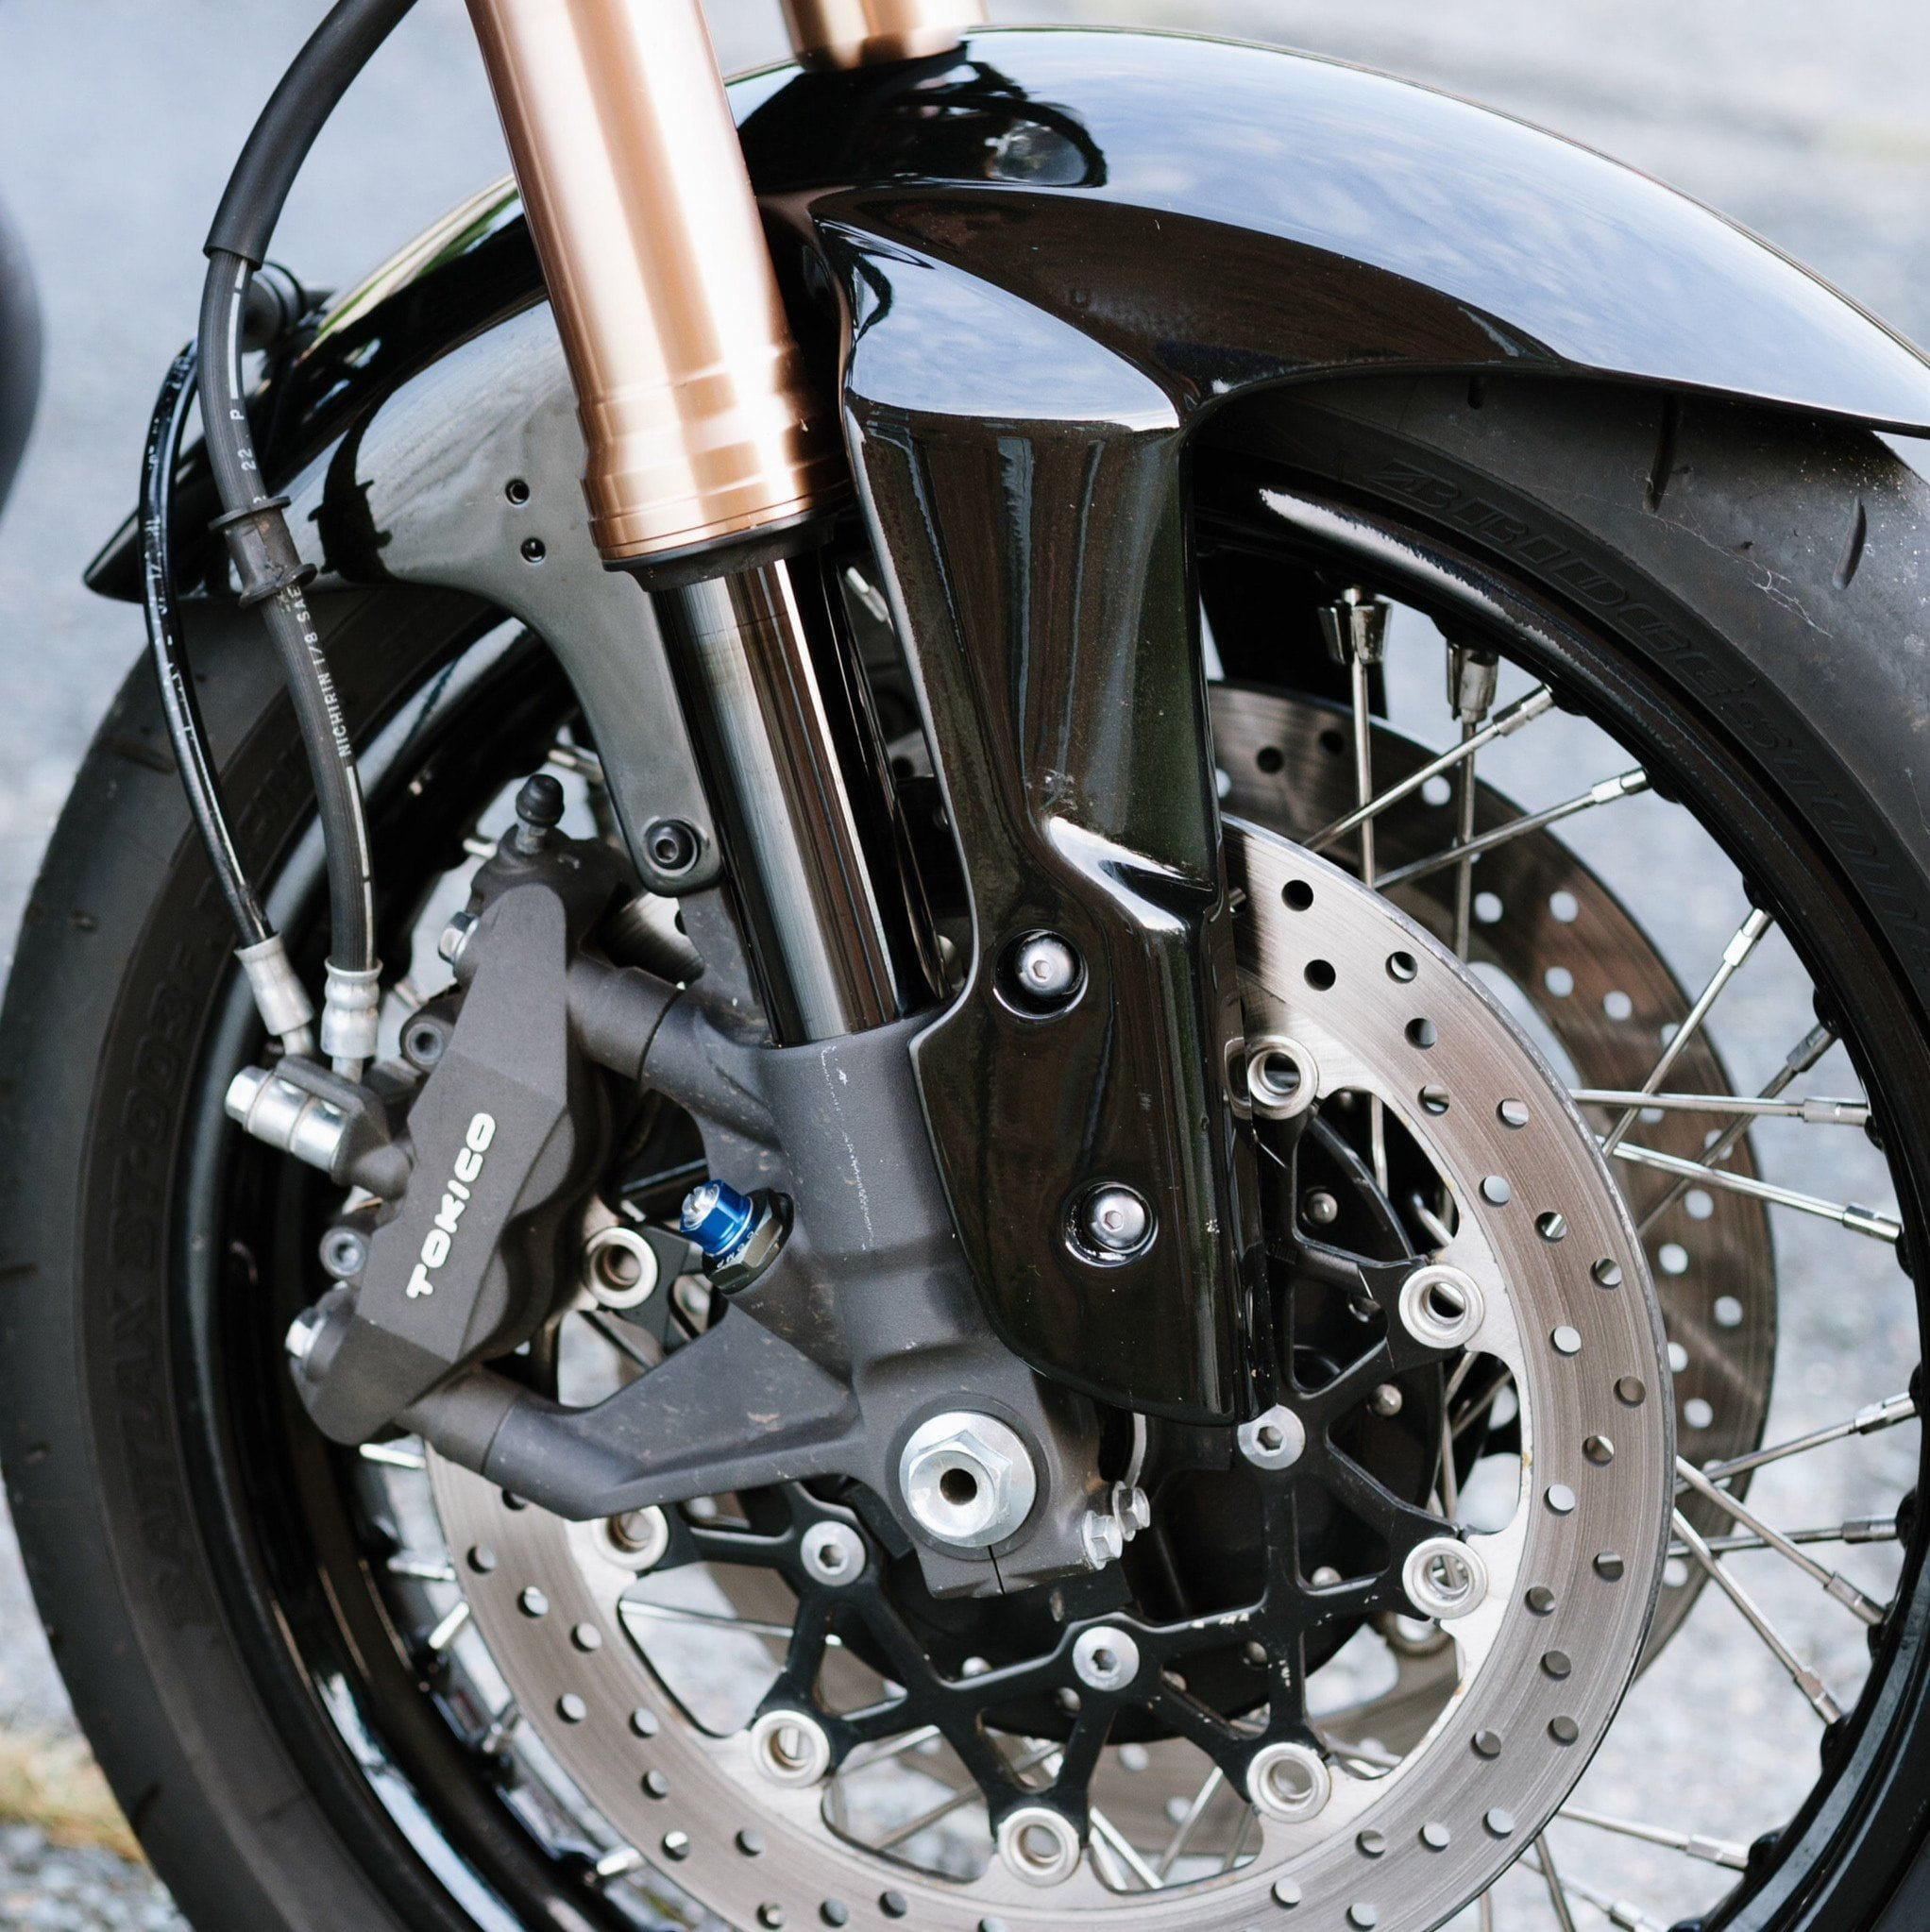 Gsx R Fork On Yamaha Xs650 Frame Conversion Stem Cognito Moto Sr500e Motorcycle Front Disc Brake Caliper Diagram And Parts 2005 2010 Hub Bolt Laced Wheel